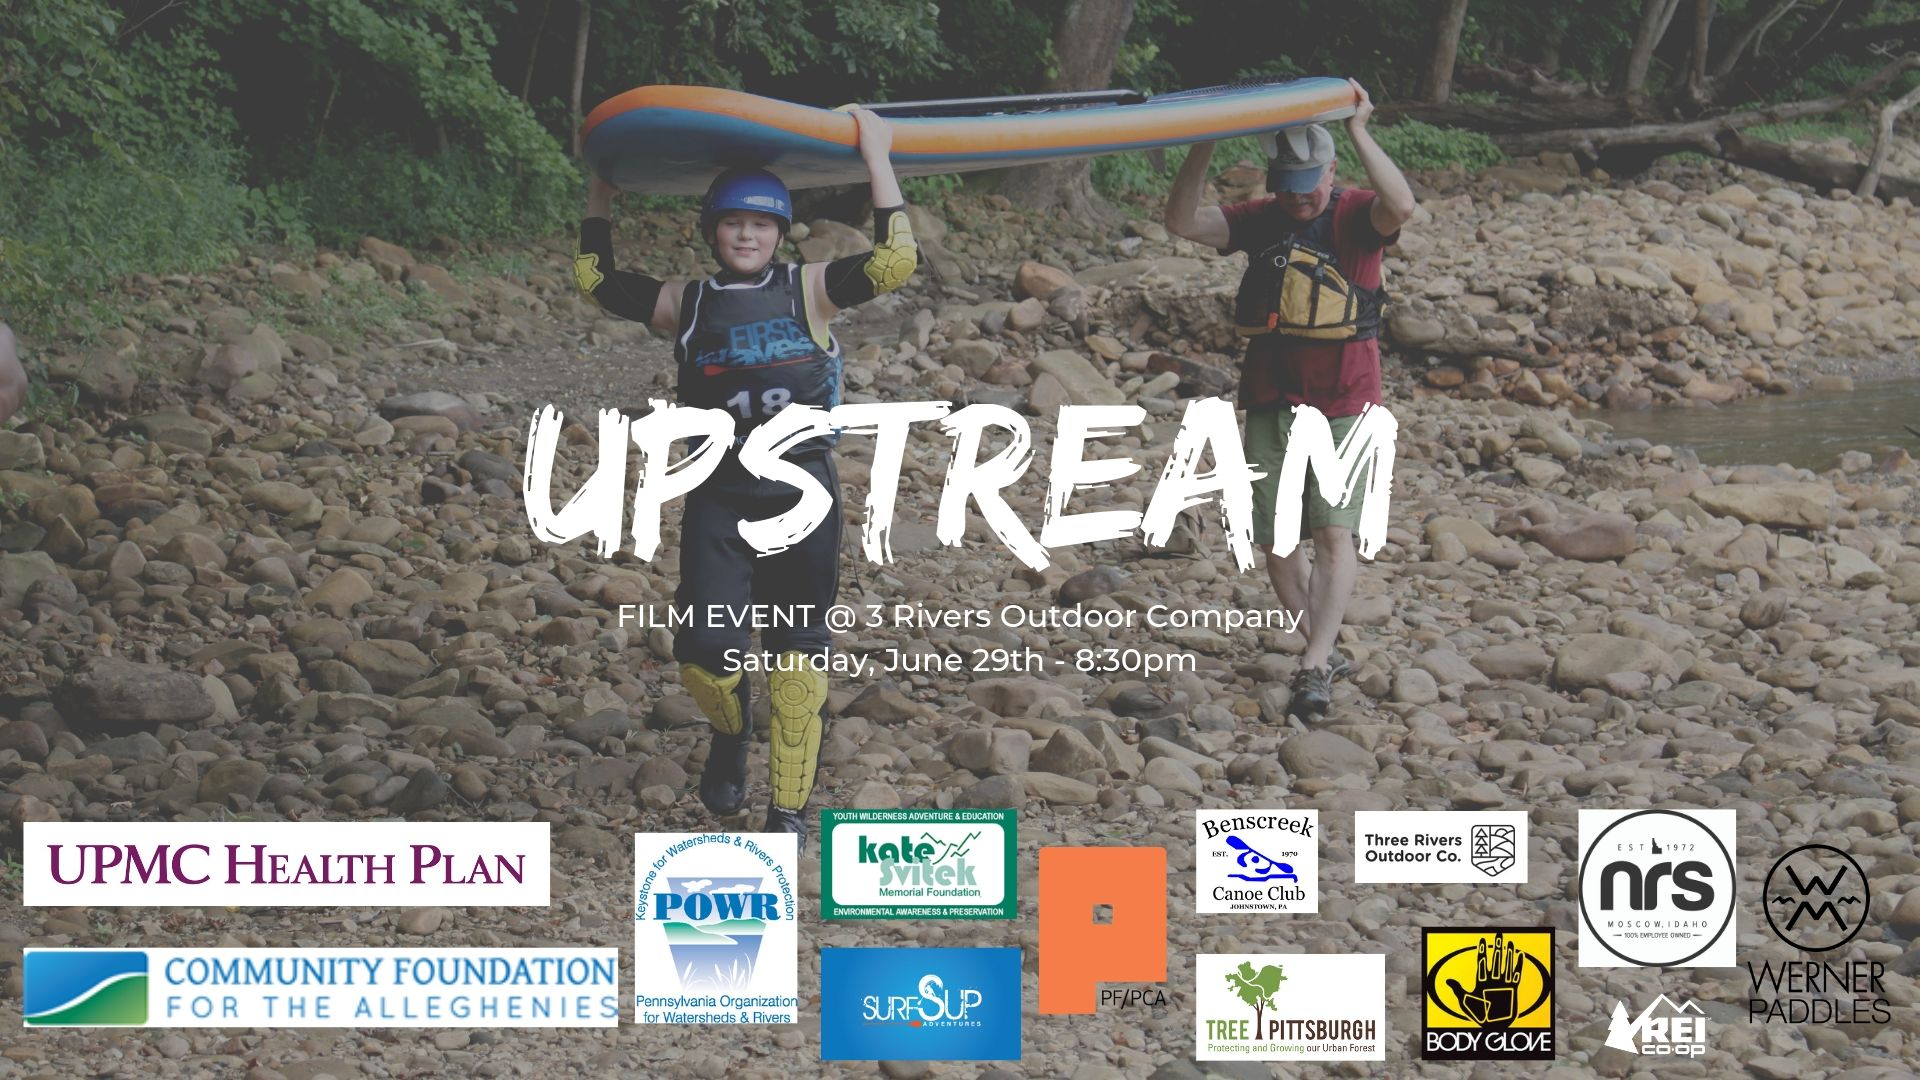 Copy of Upstream Promotional.jpg